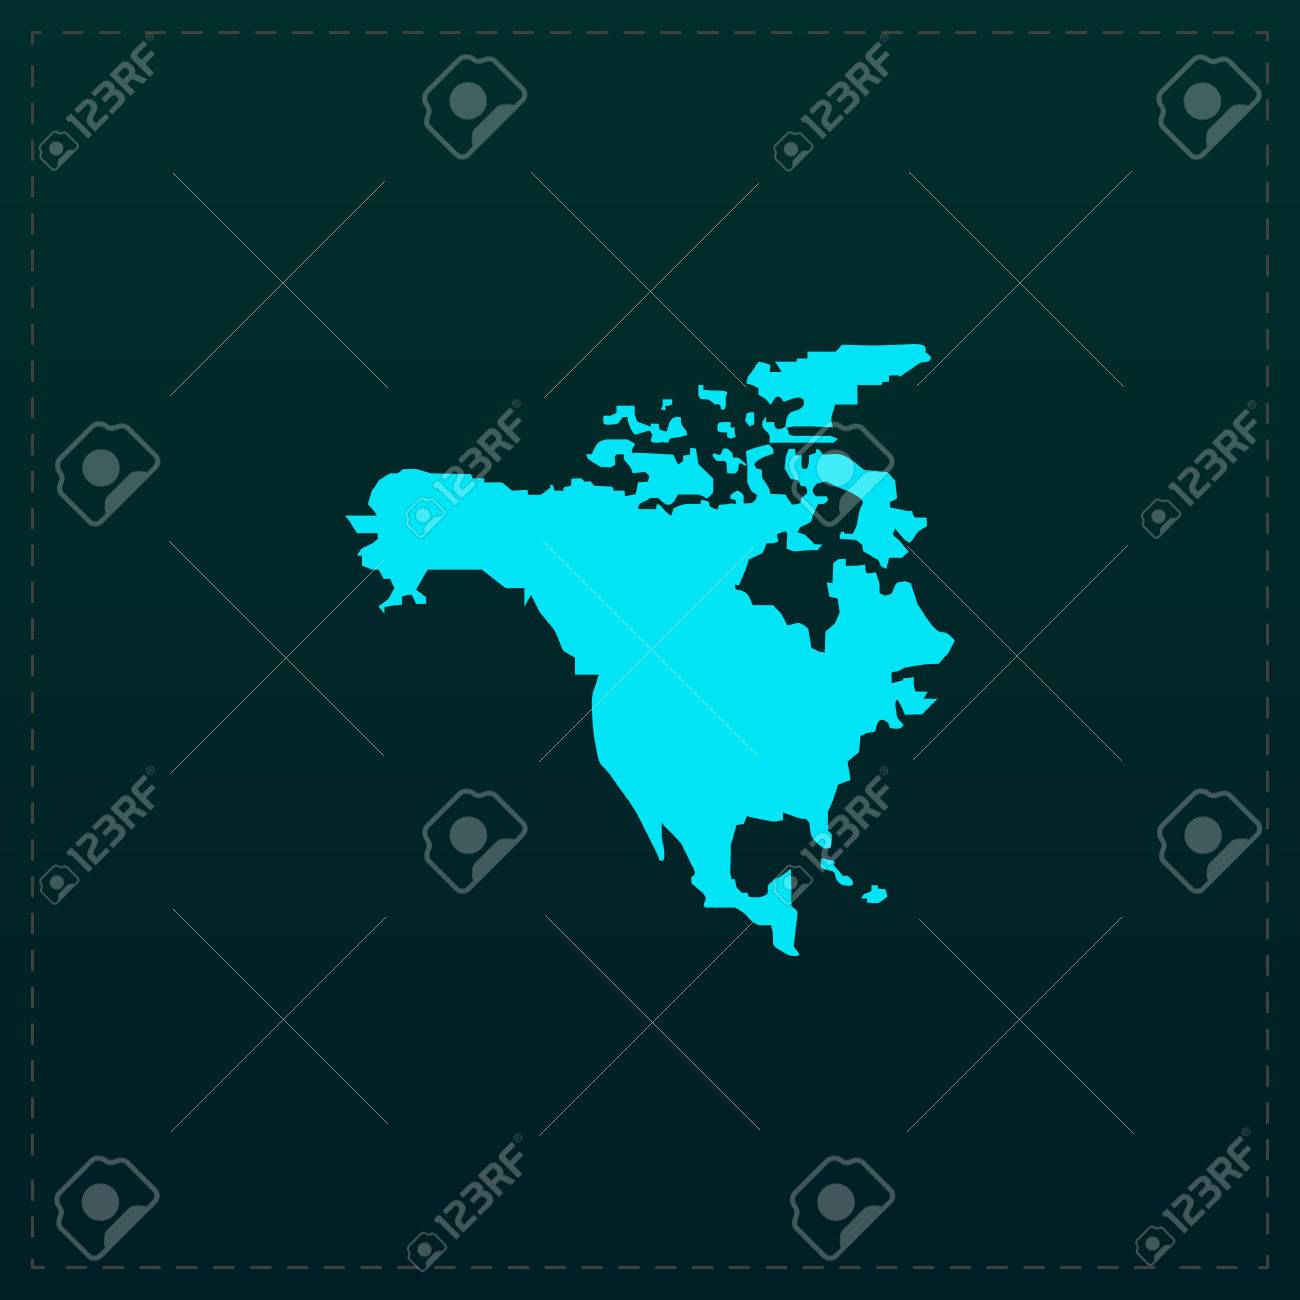 Free North America Map.North America Map Color Symbol Icon On Black Background Vector